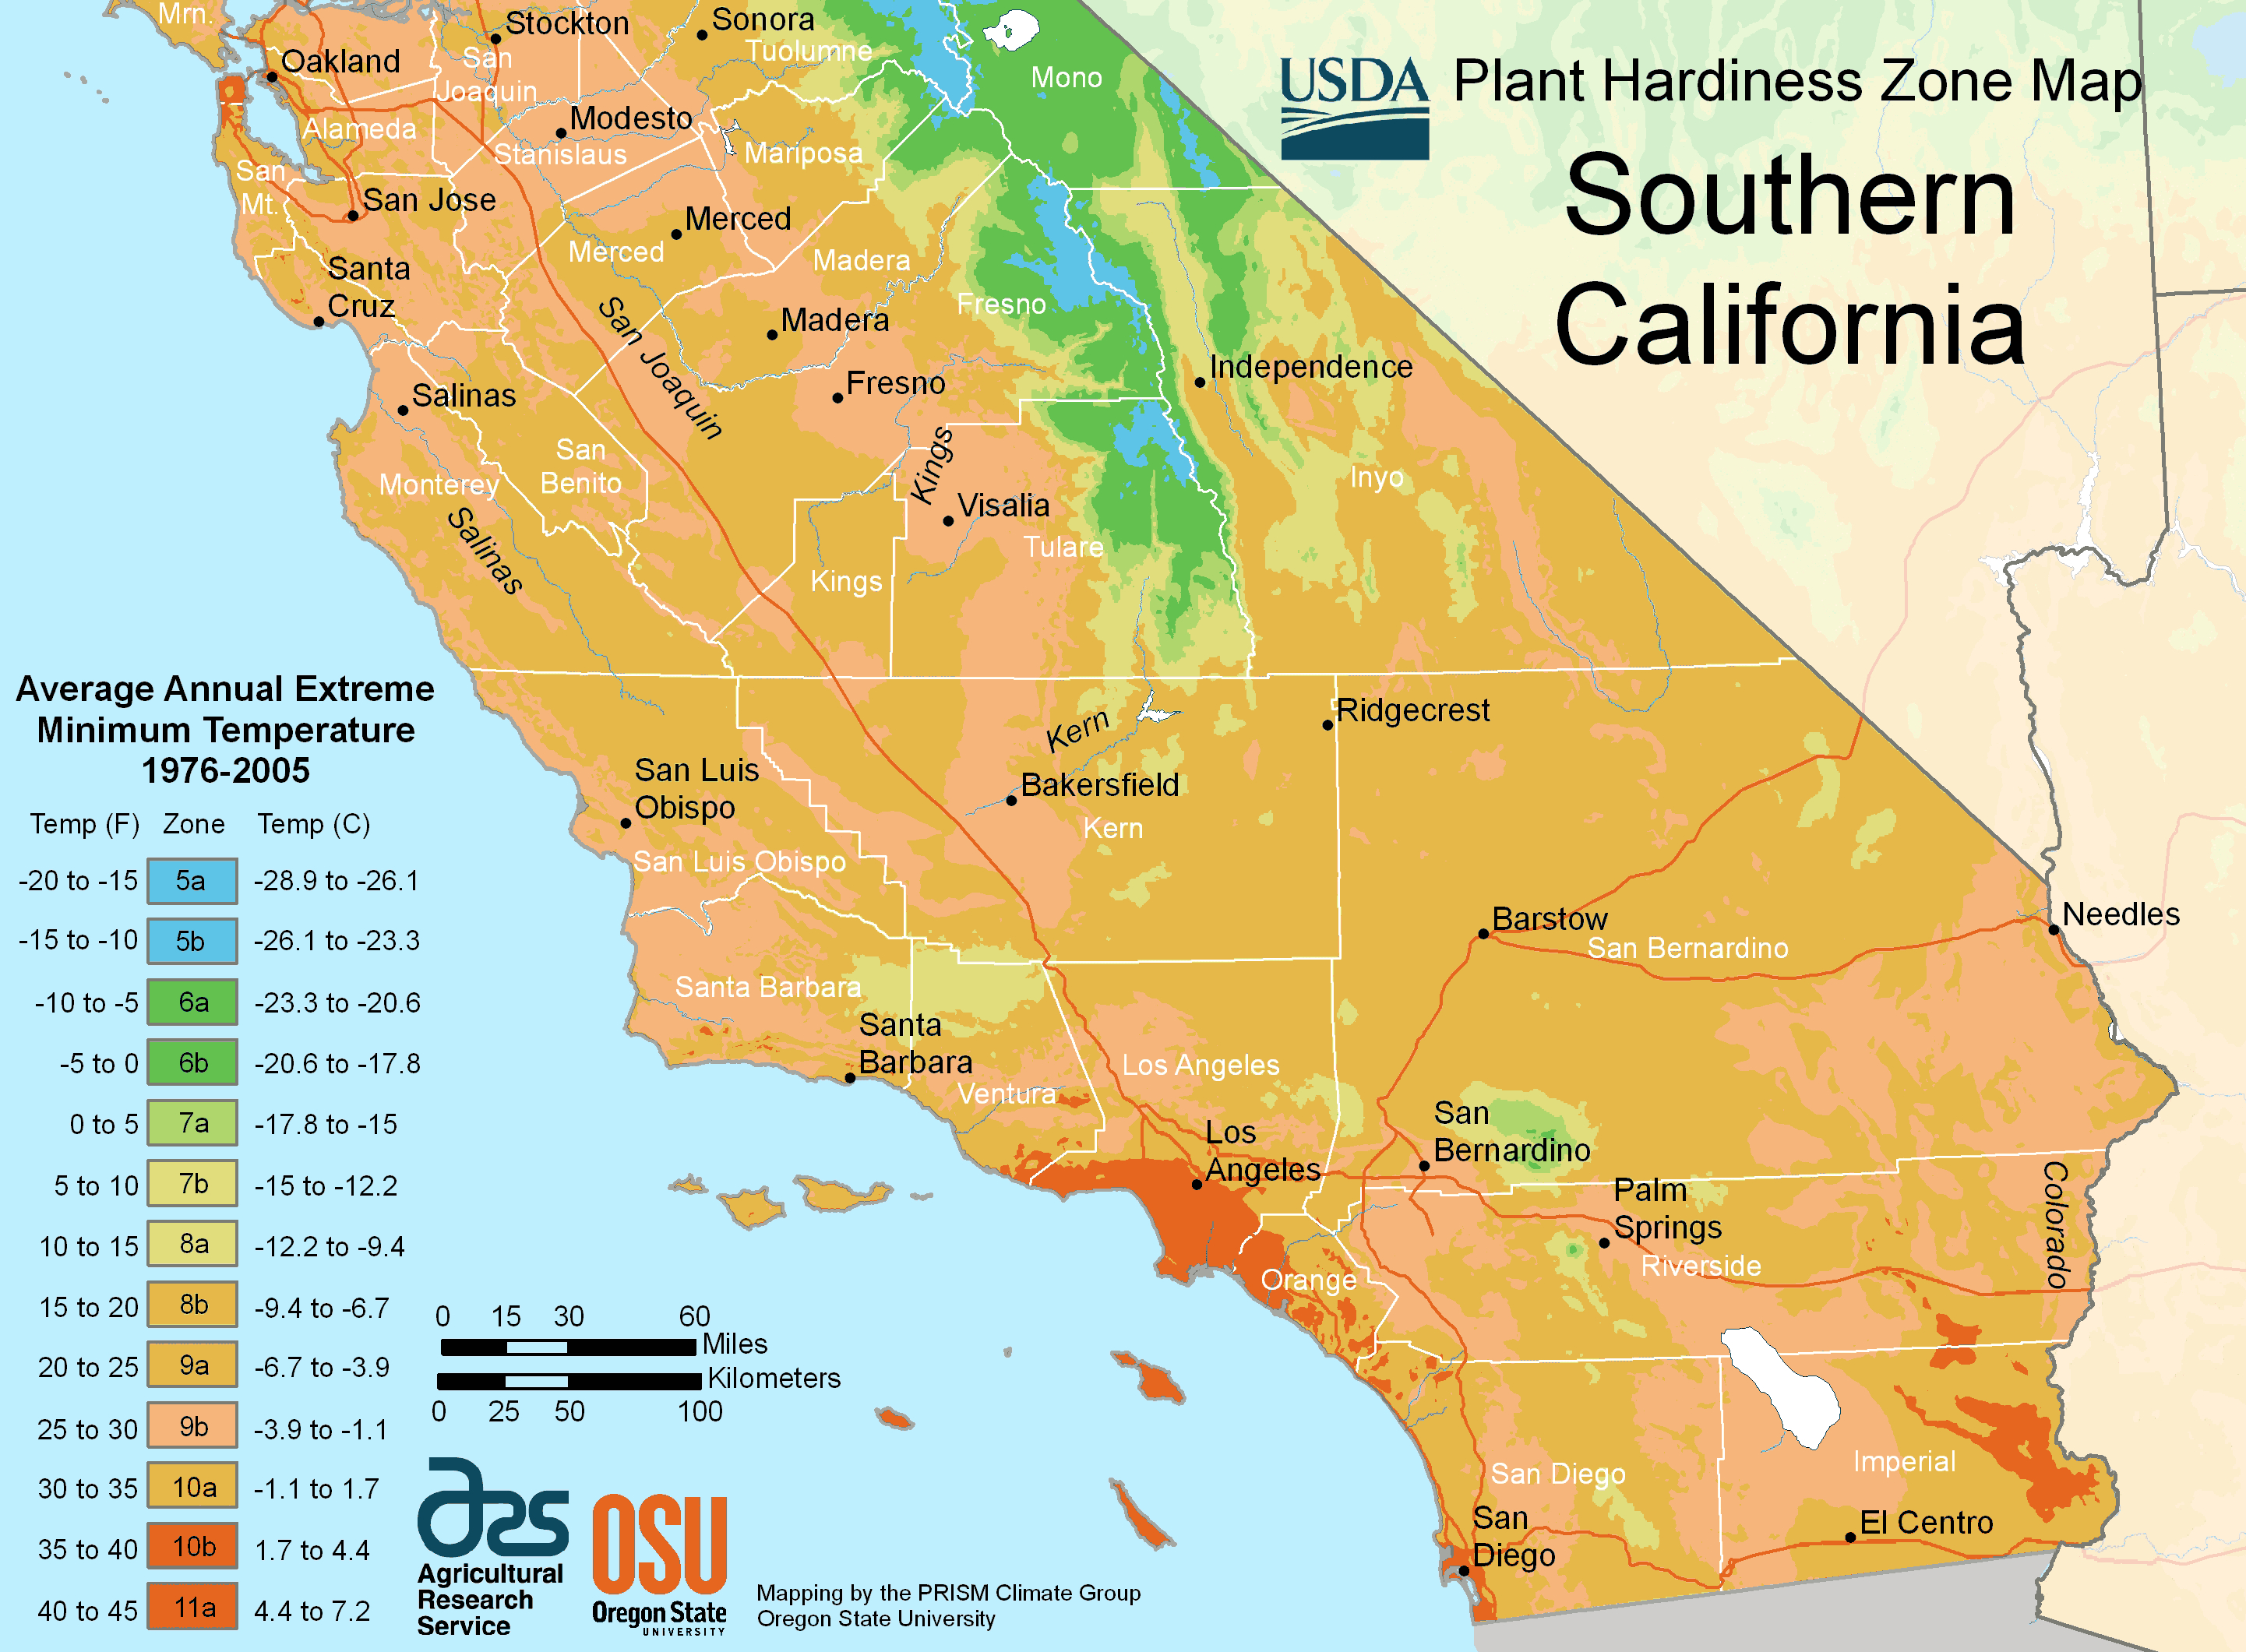 South California Plant Hardiness Zone Map • Mapsof - Usda Hardiness Zone Map California